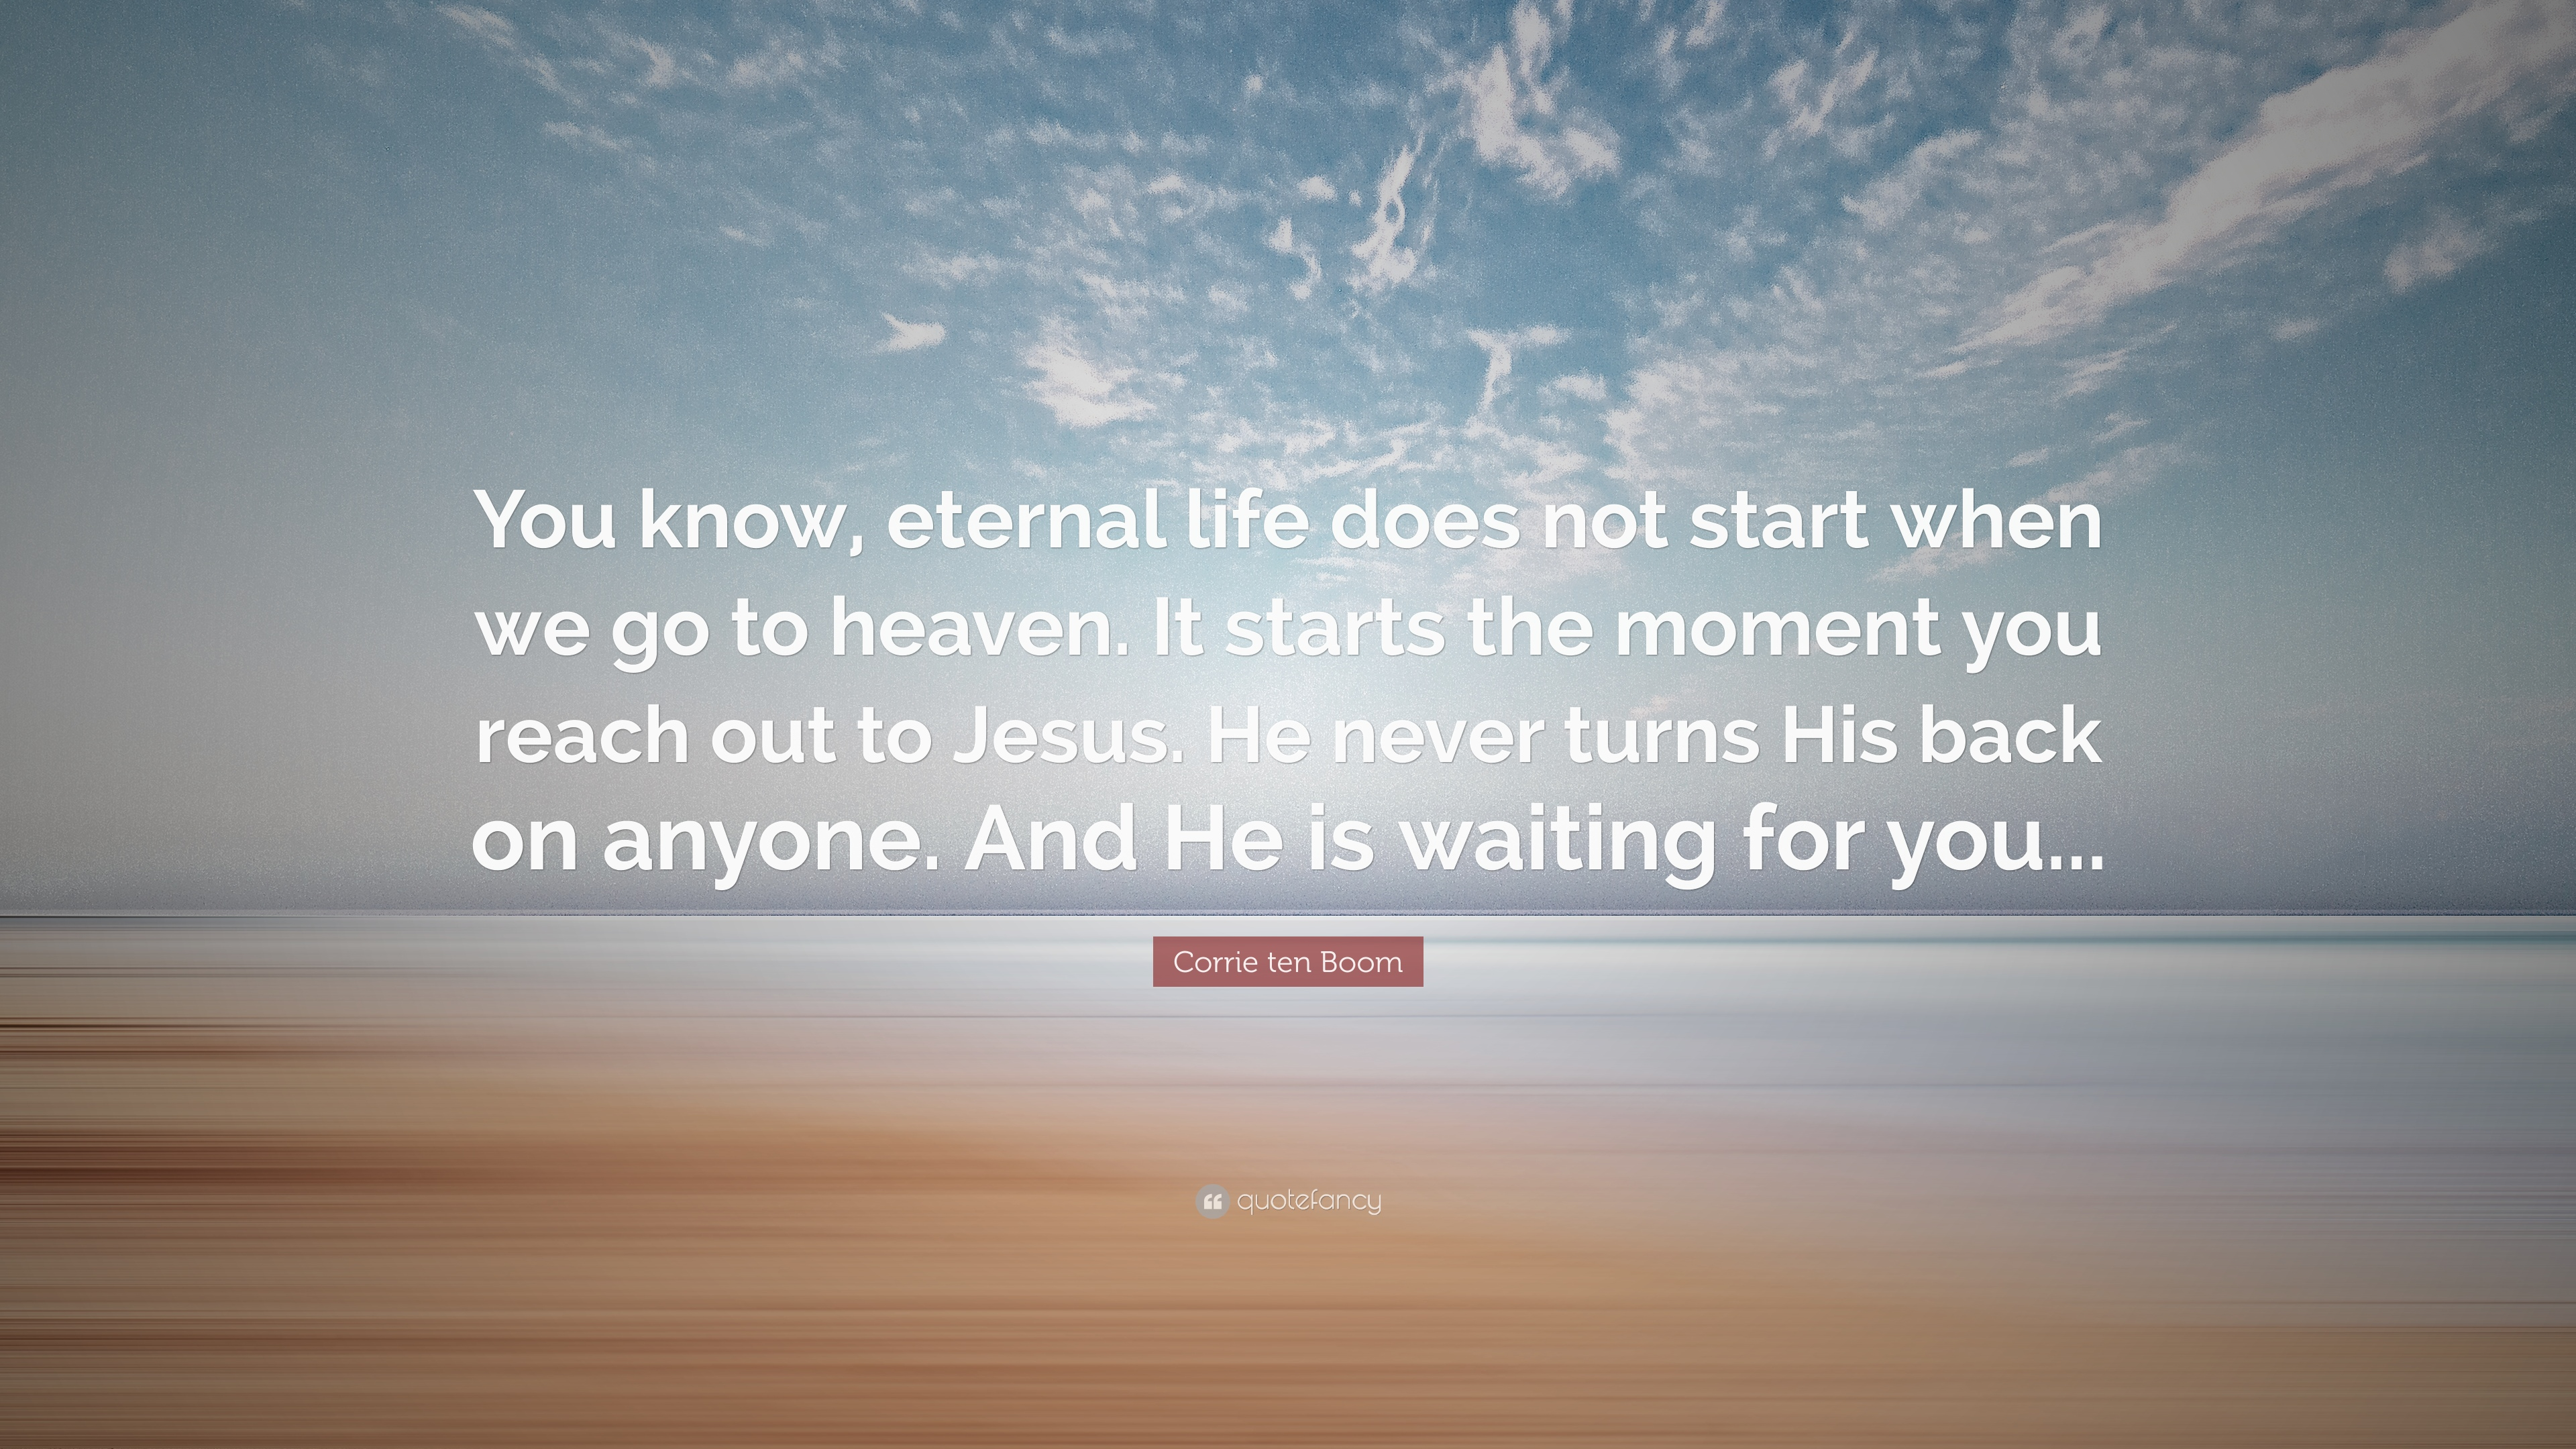 the question of whether we will really know when jesus will return When jesus returns, how will we know that it is really him and not some impostor there will be no mistaking jesus' return.